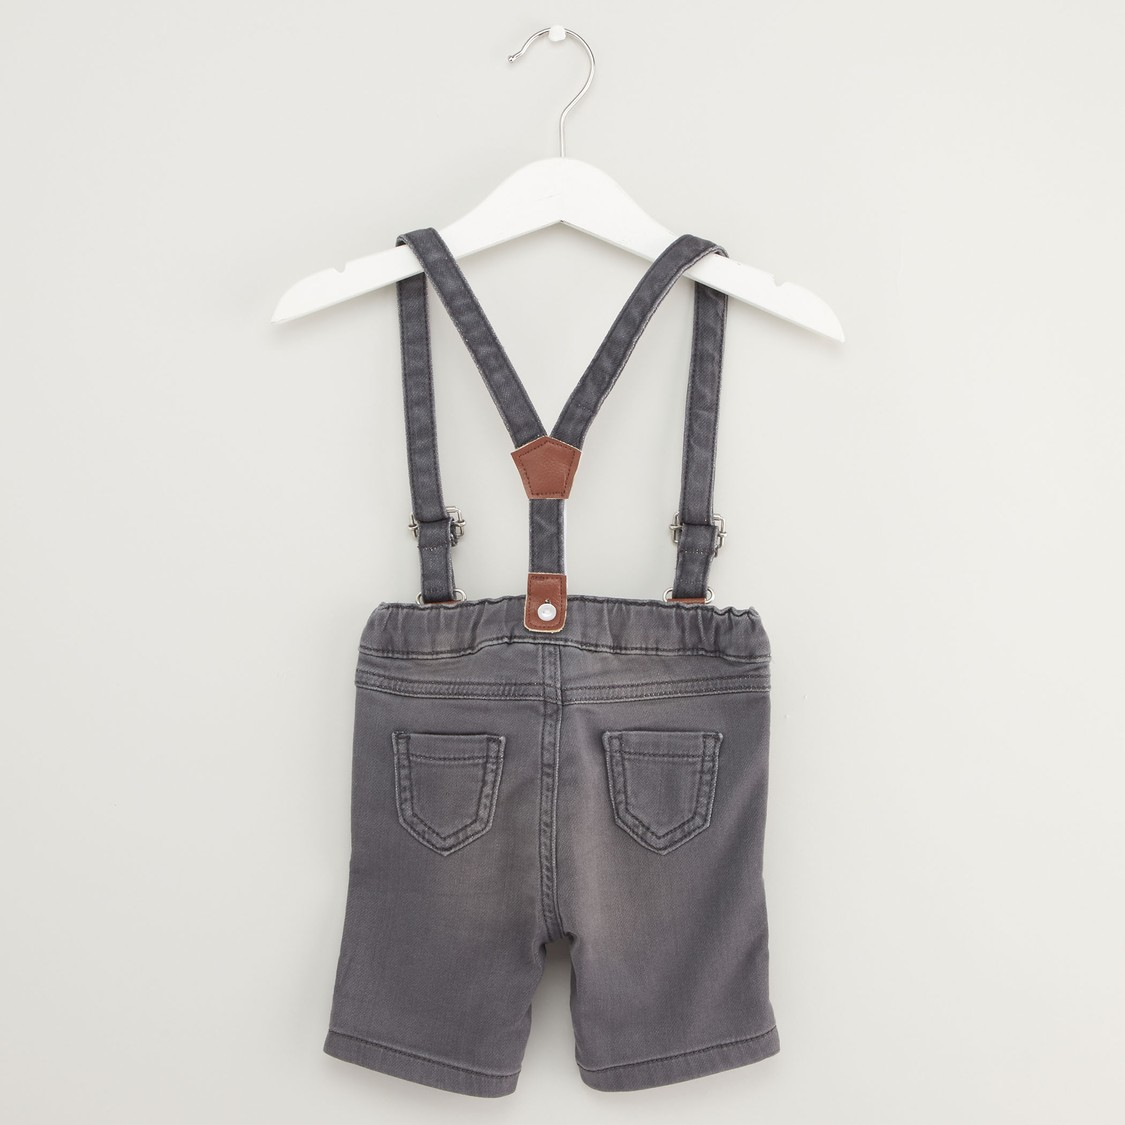 Textured Denim Shorts with Suspenders